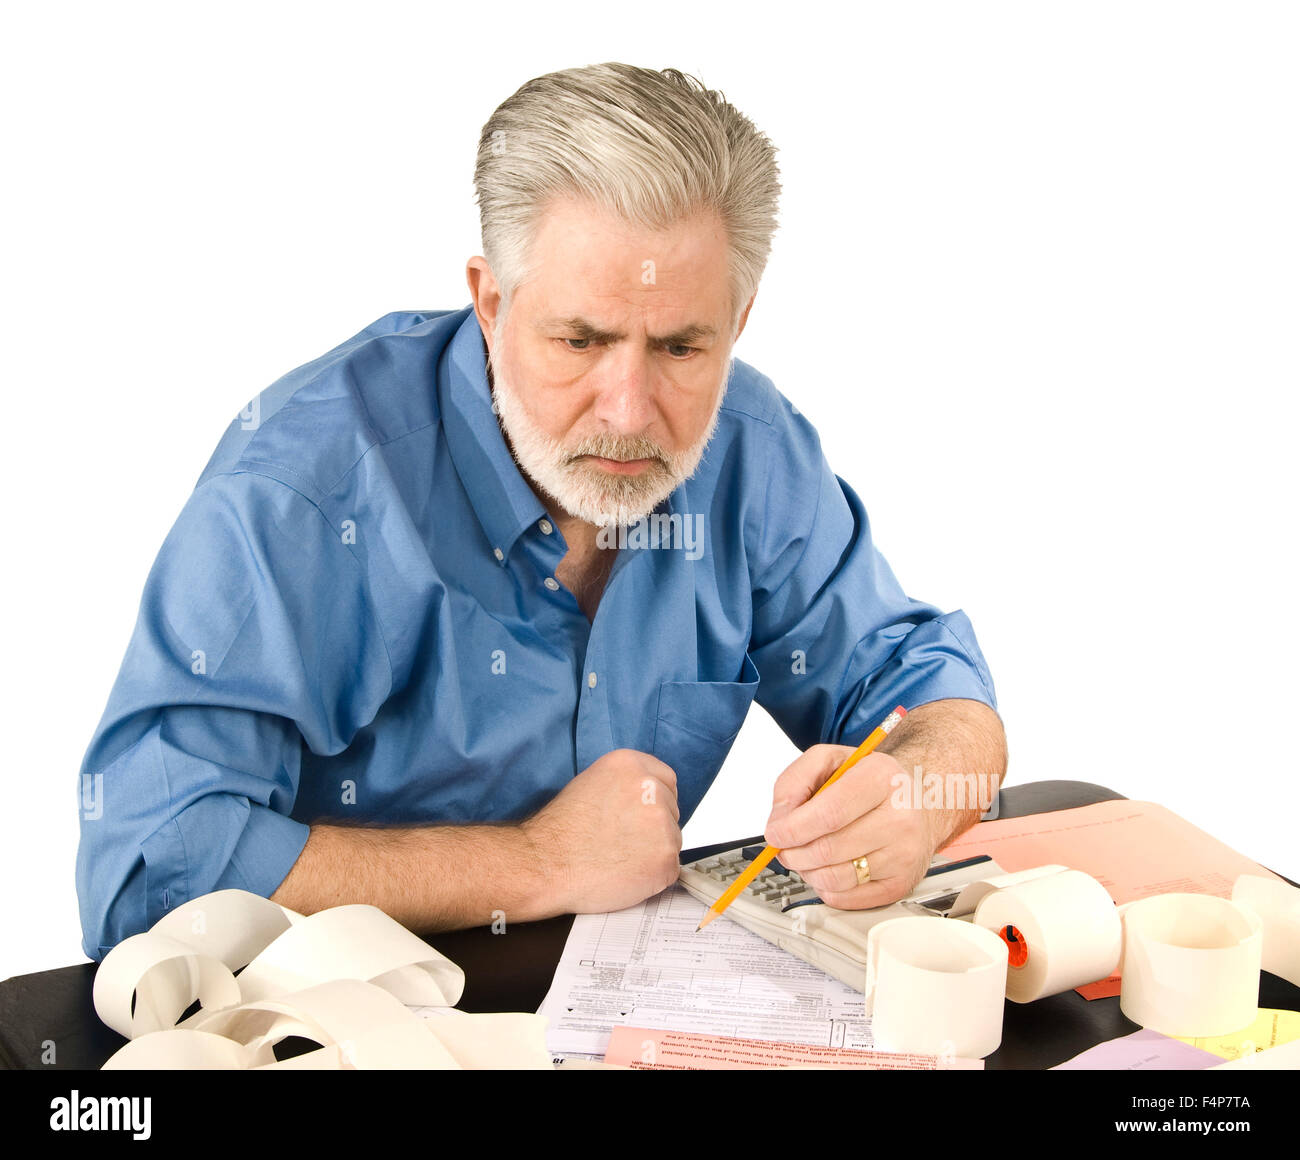 A mature man is working on his taxes - Stock Image